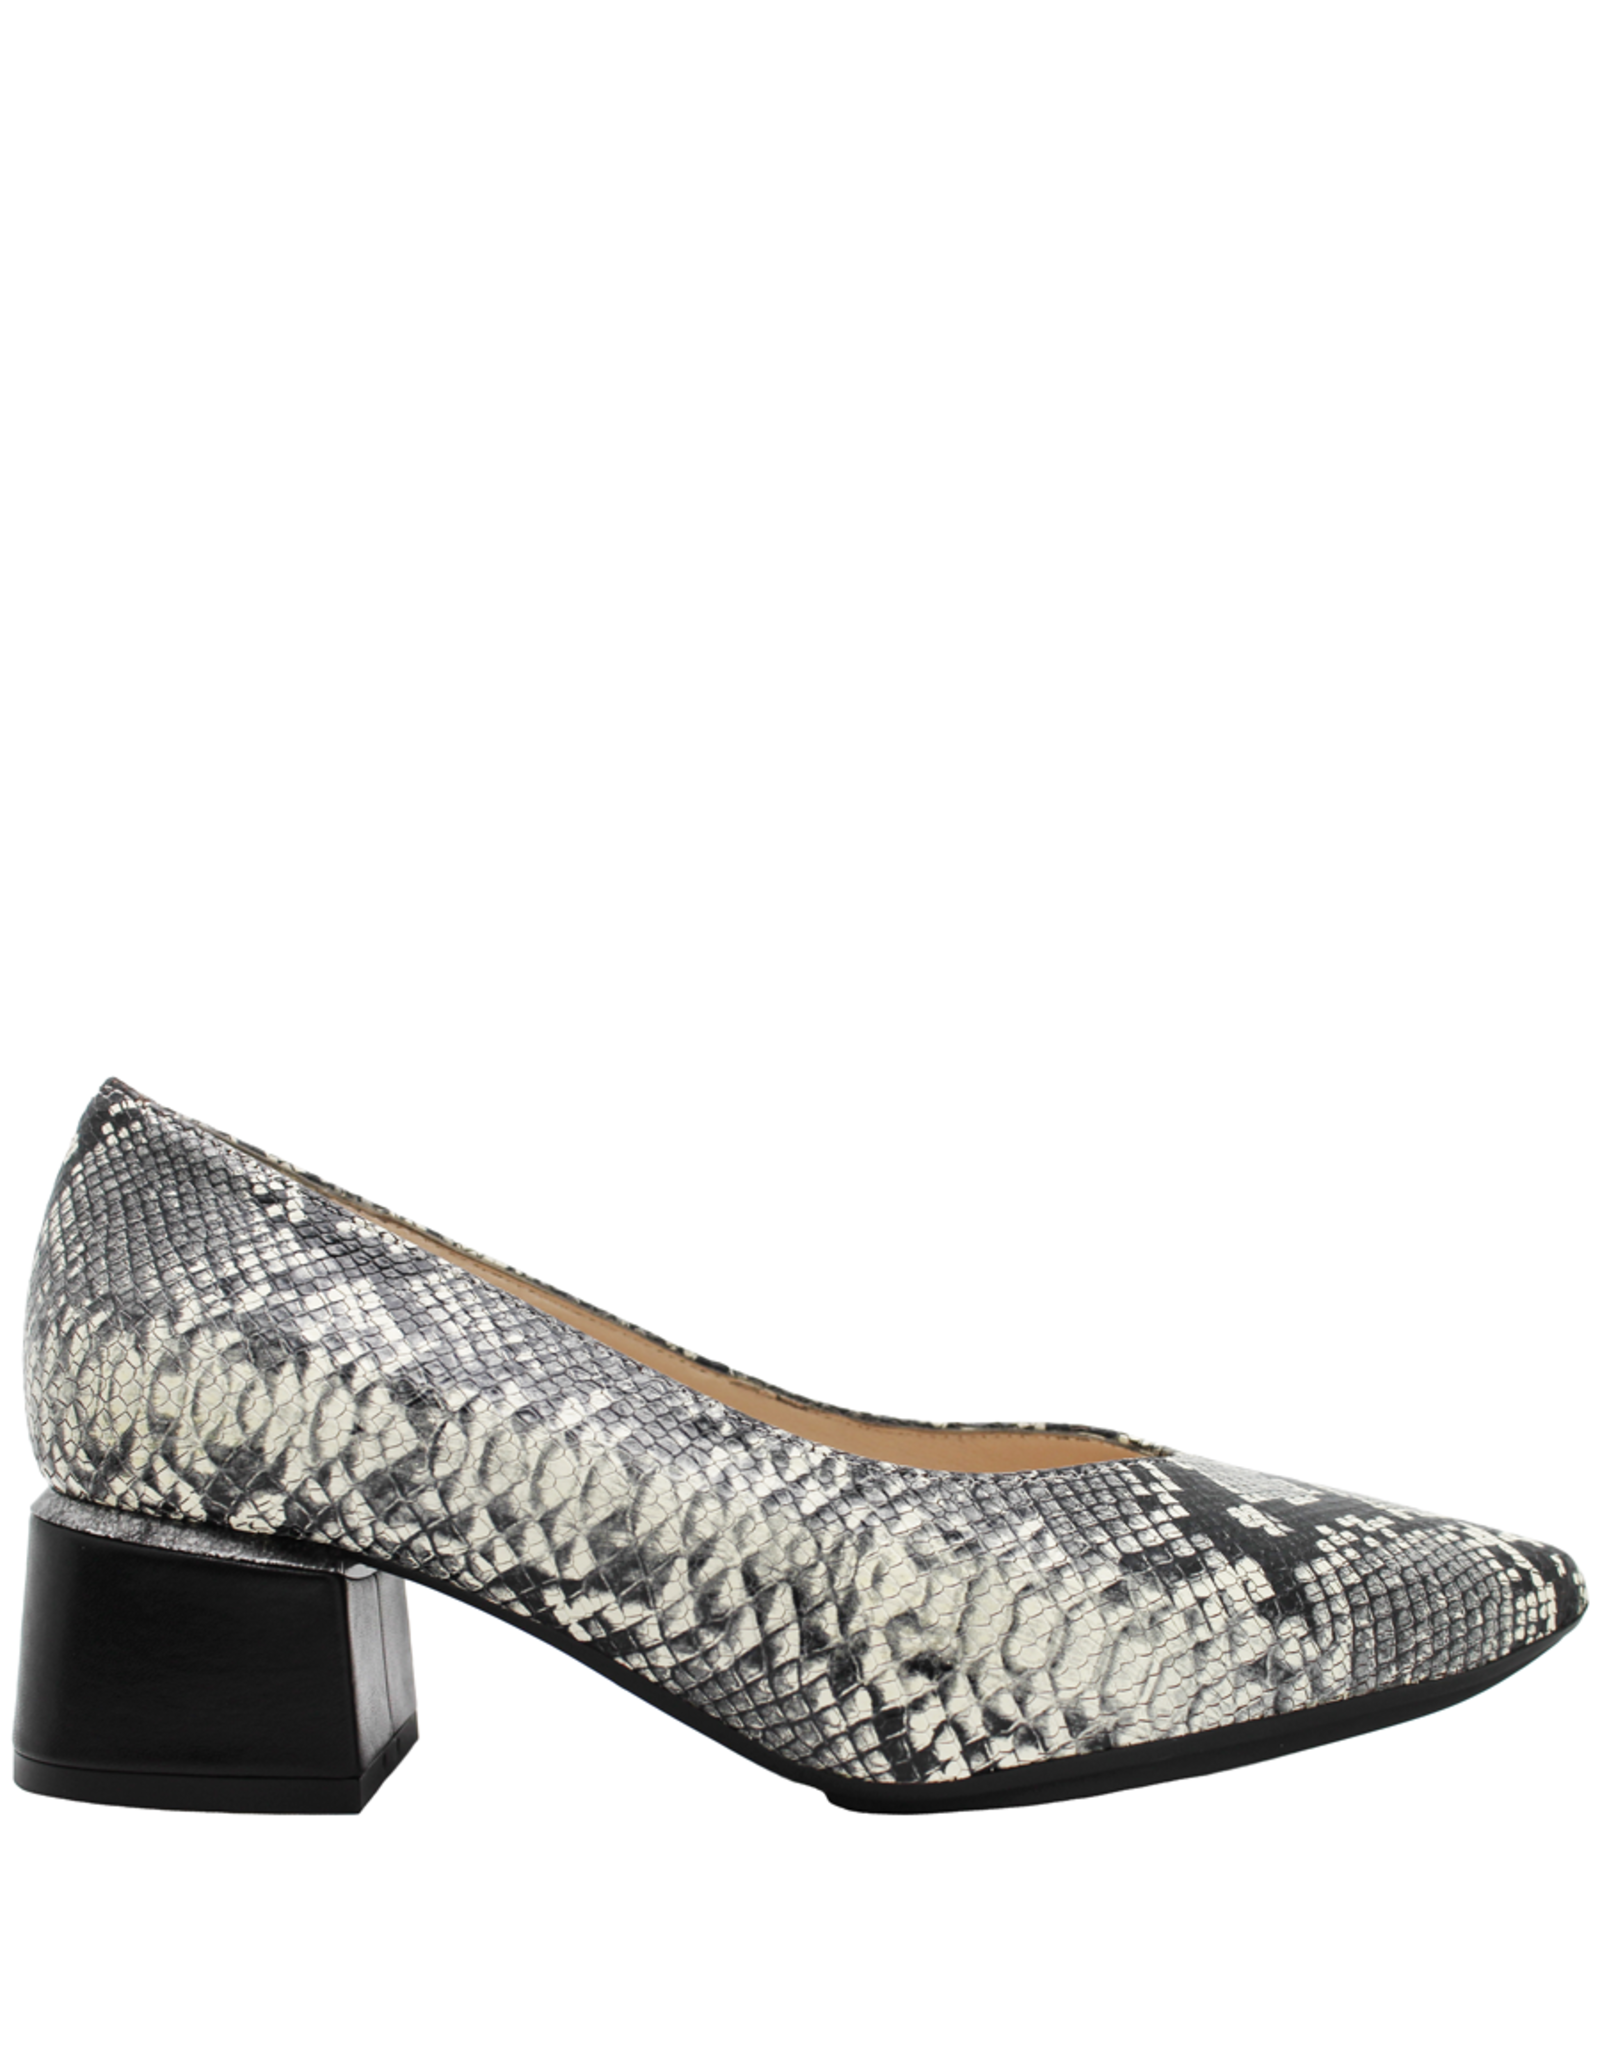 Gadea Gadea Black White Python Point Toe Pump Block Heel 5180